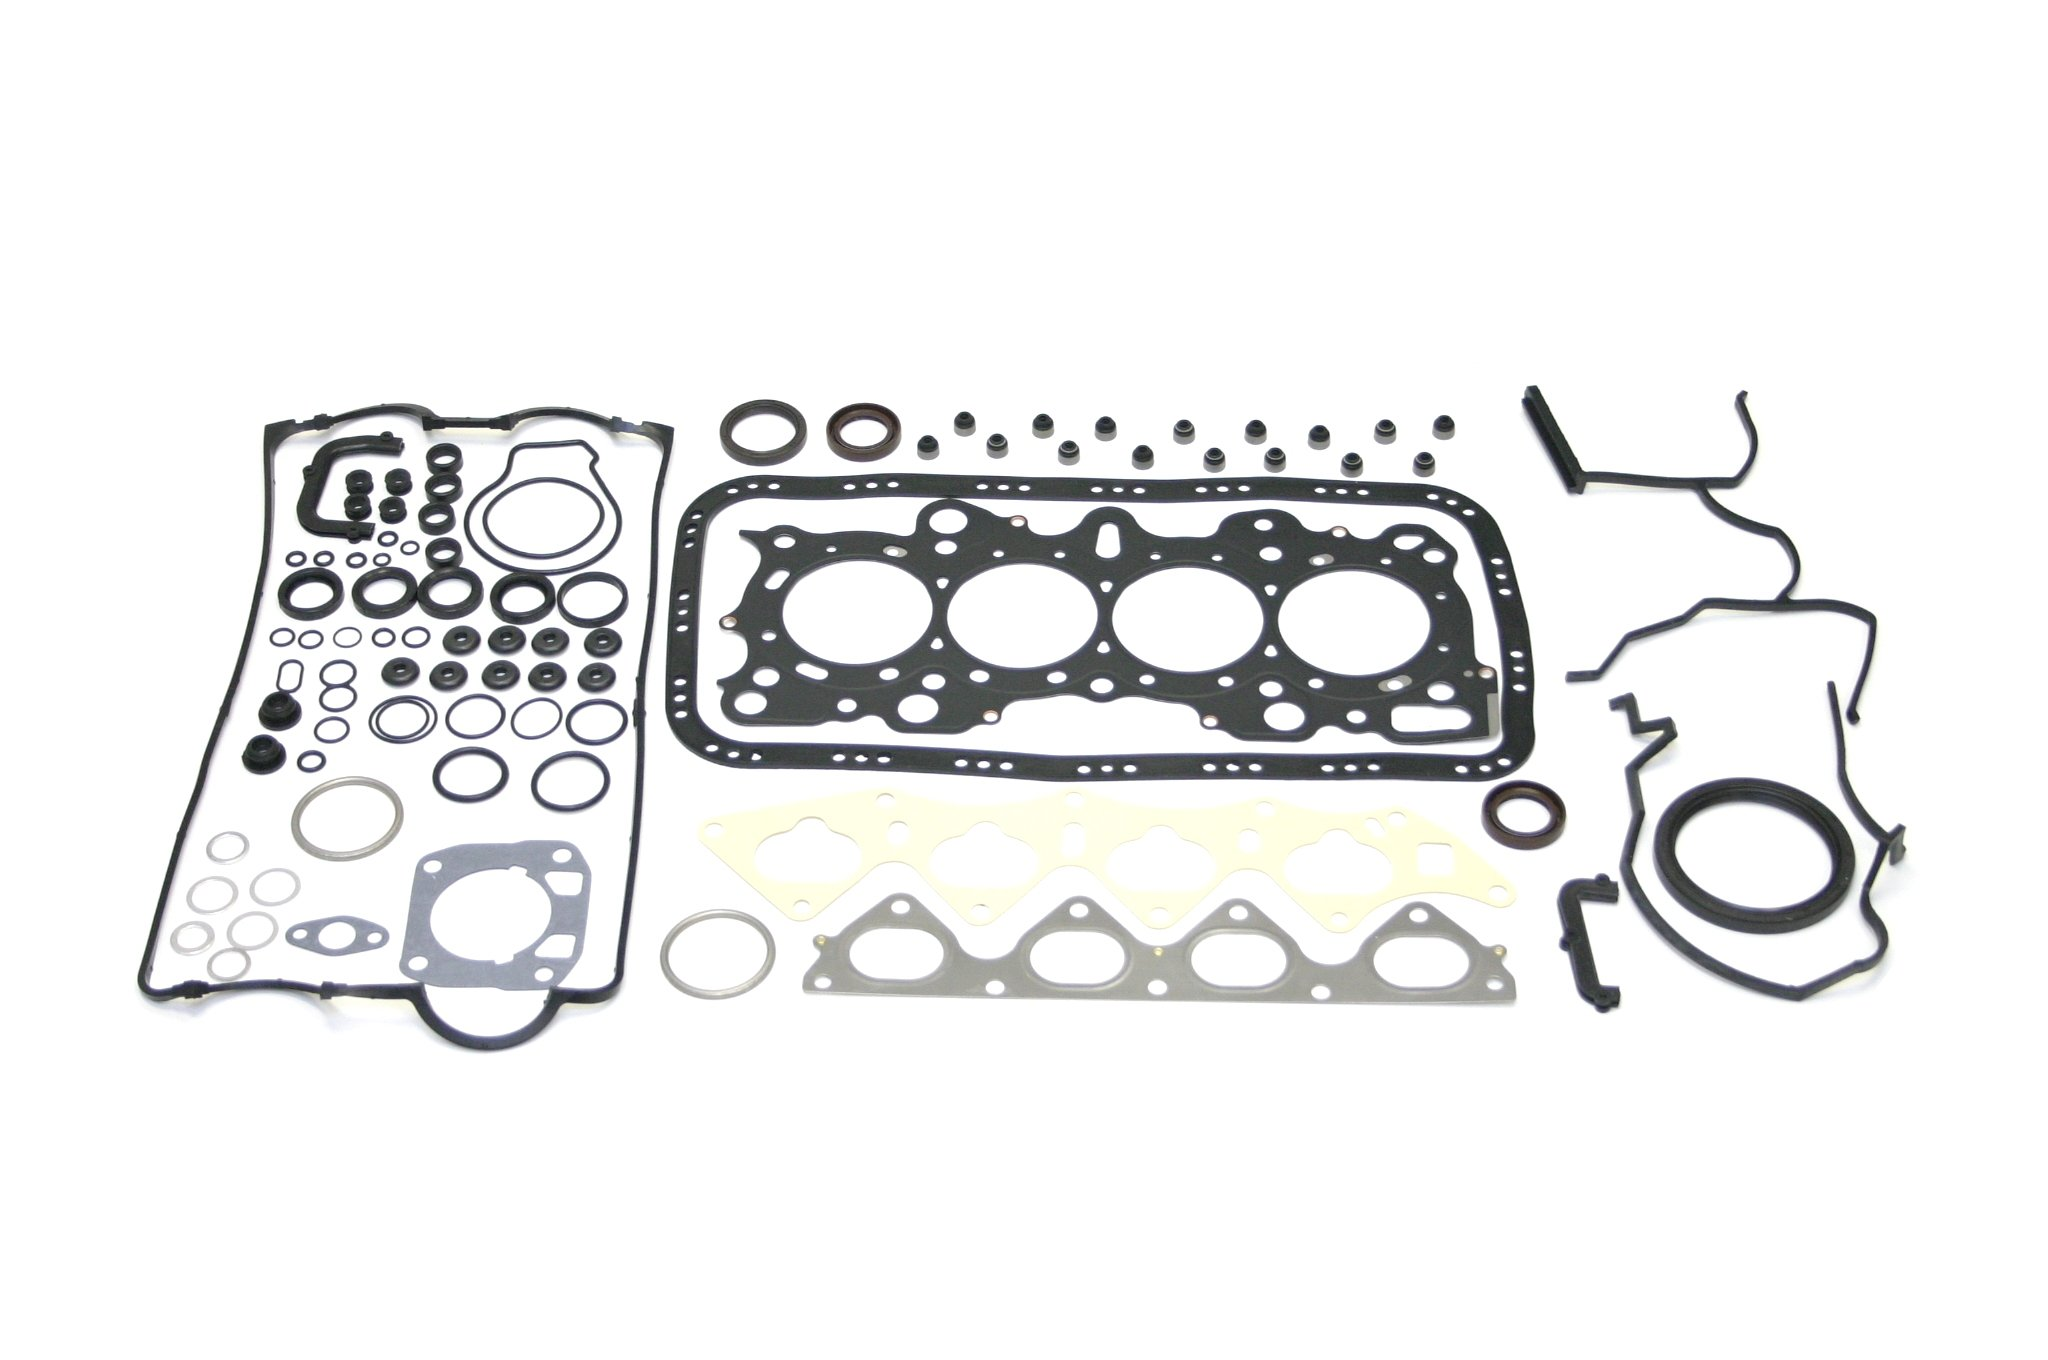 Cheap Head Gasket Set, find Head Gasket Set deals on line